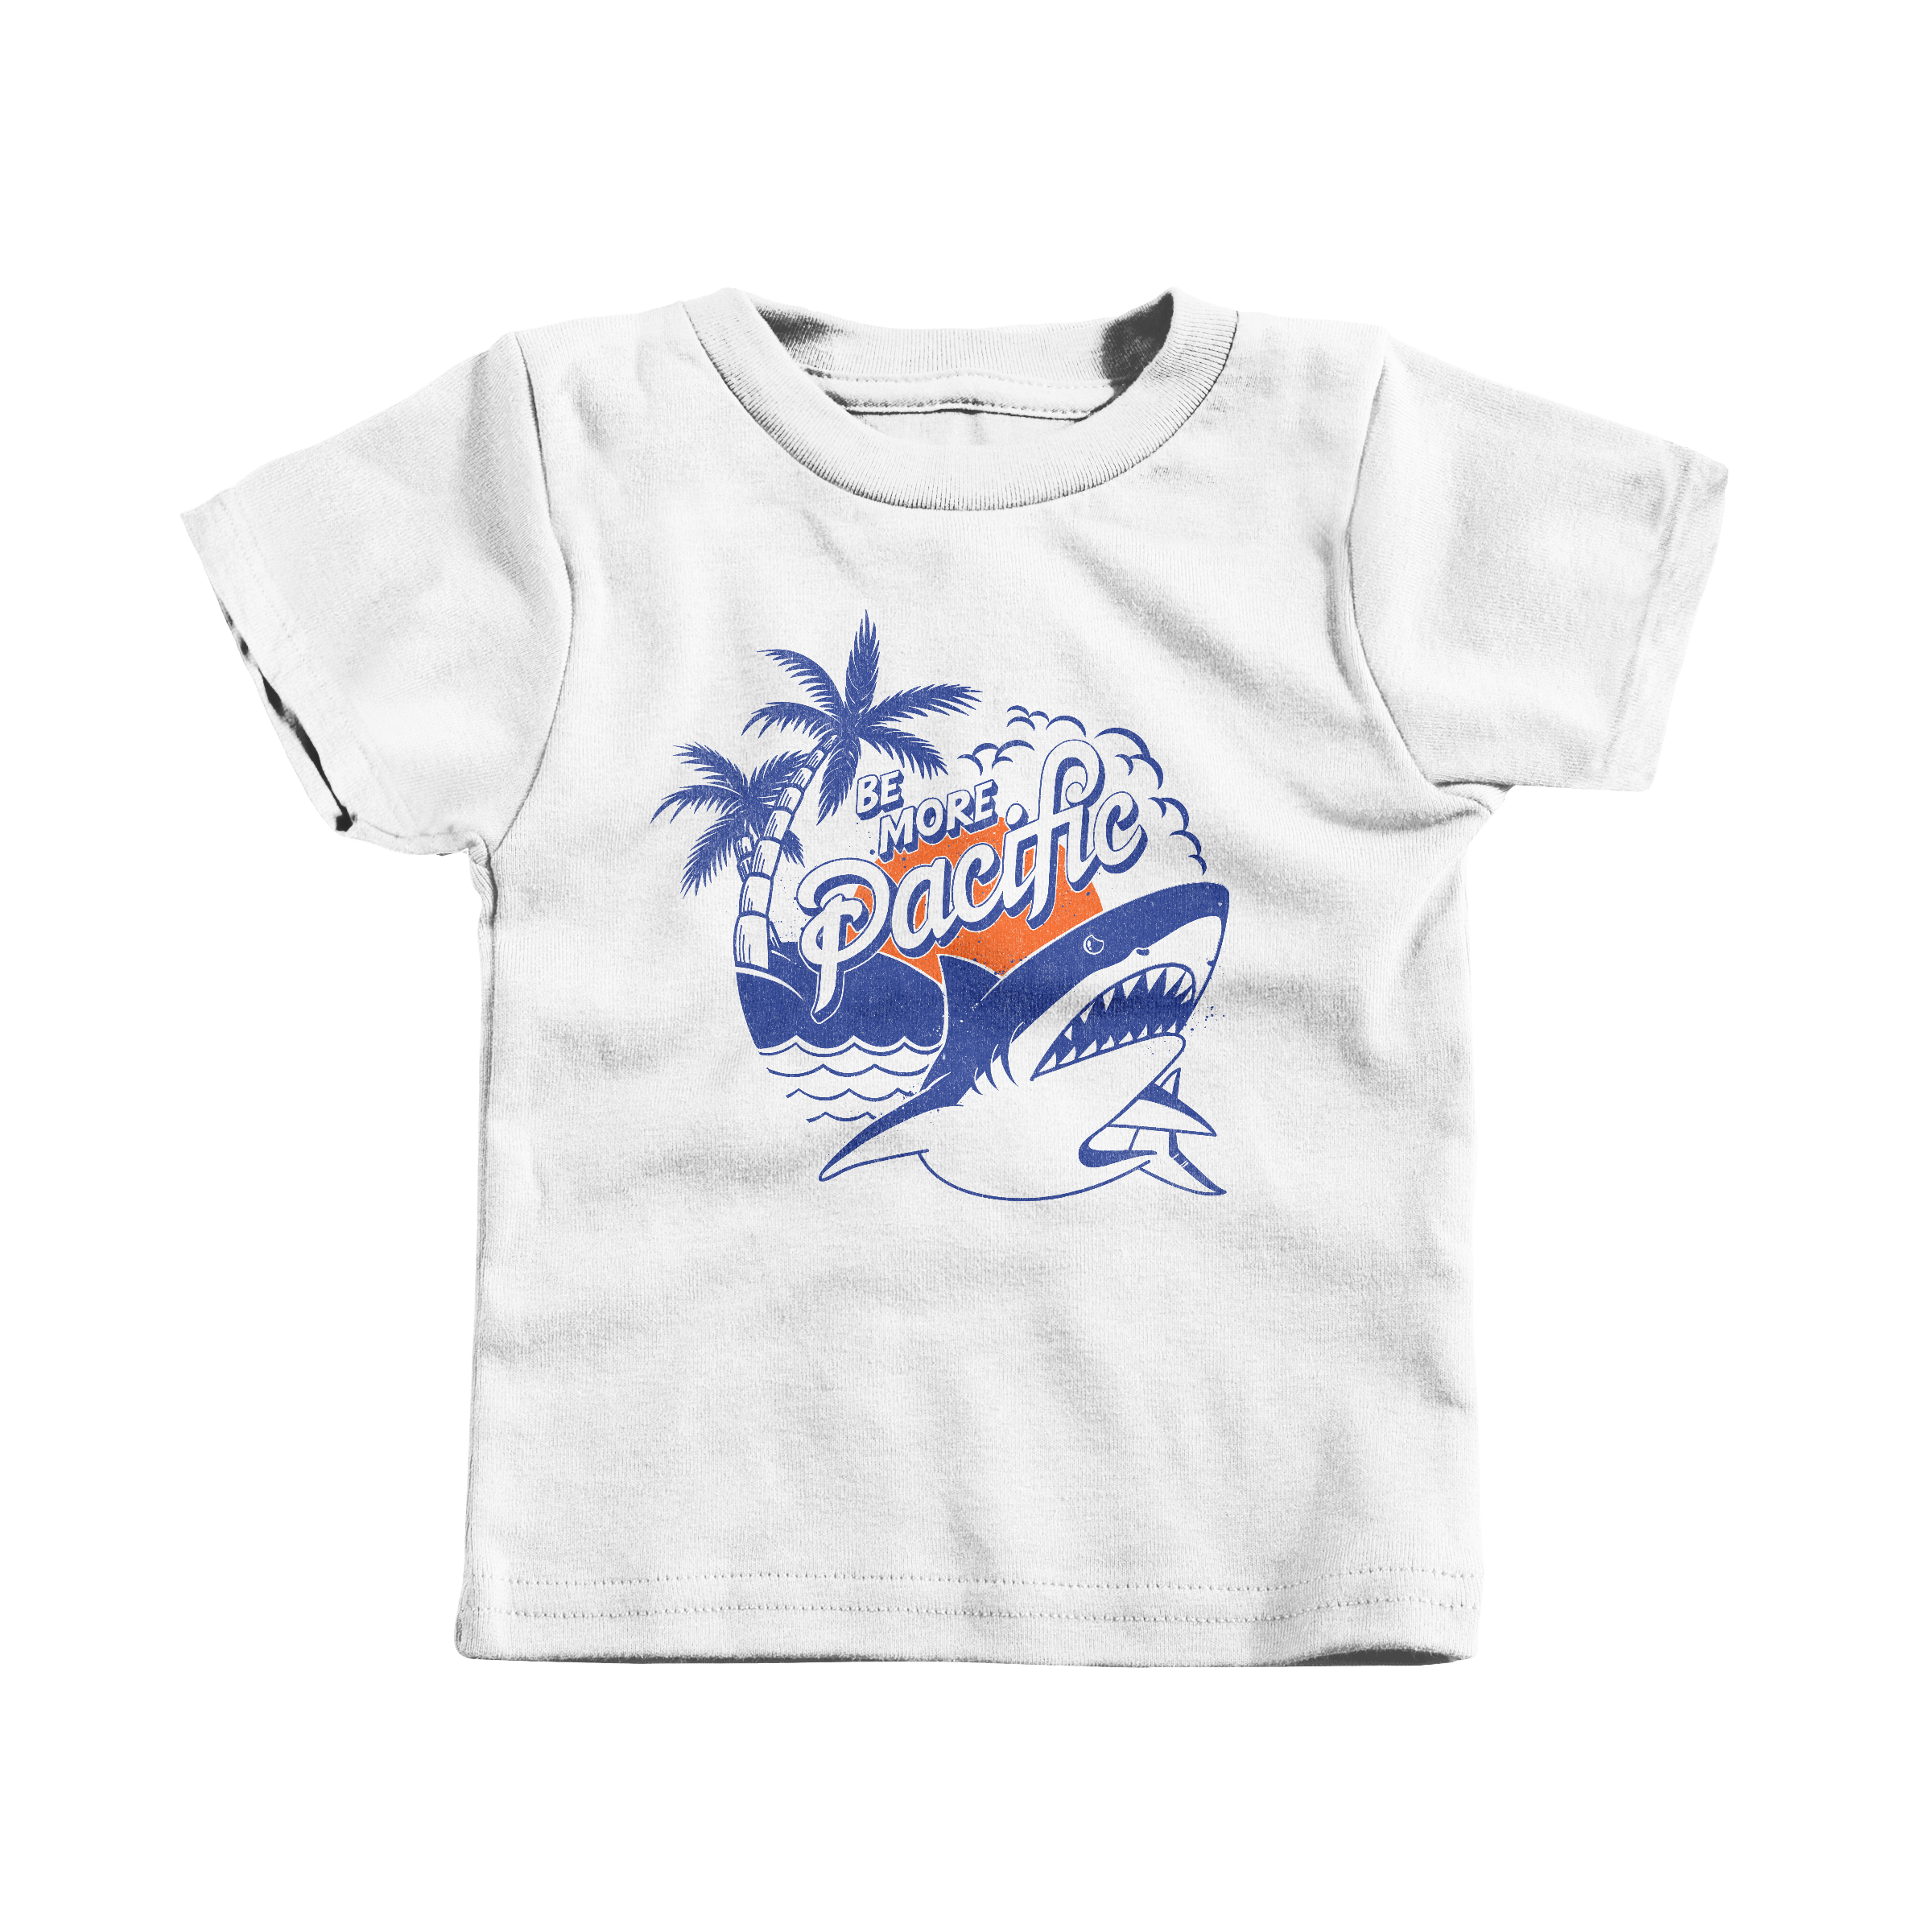 Be More Pacific White (T-Shirt)